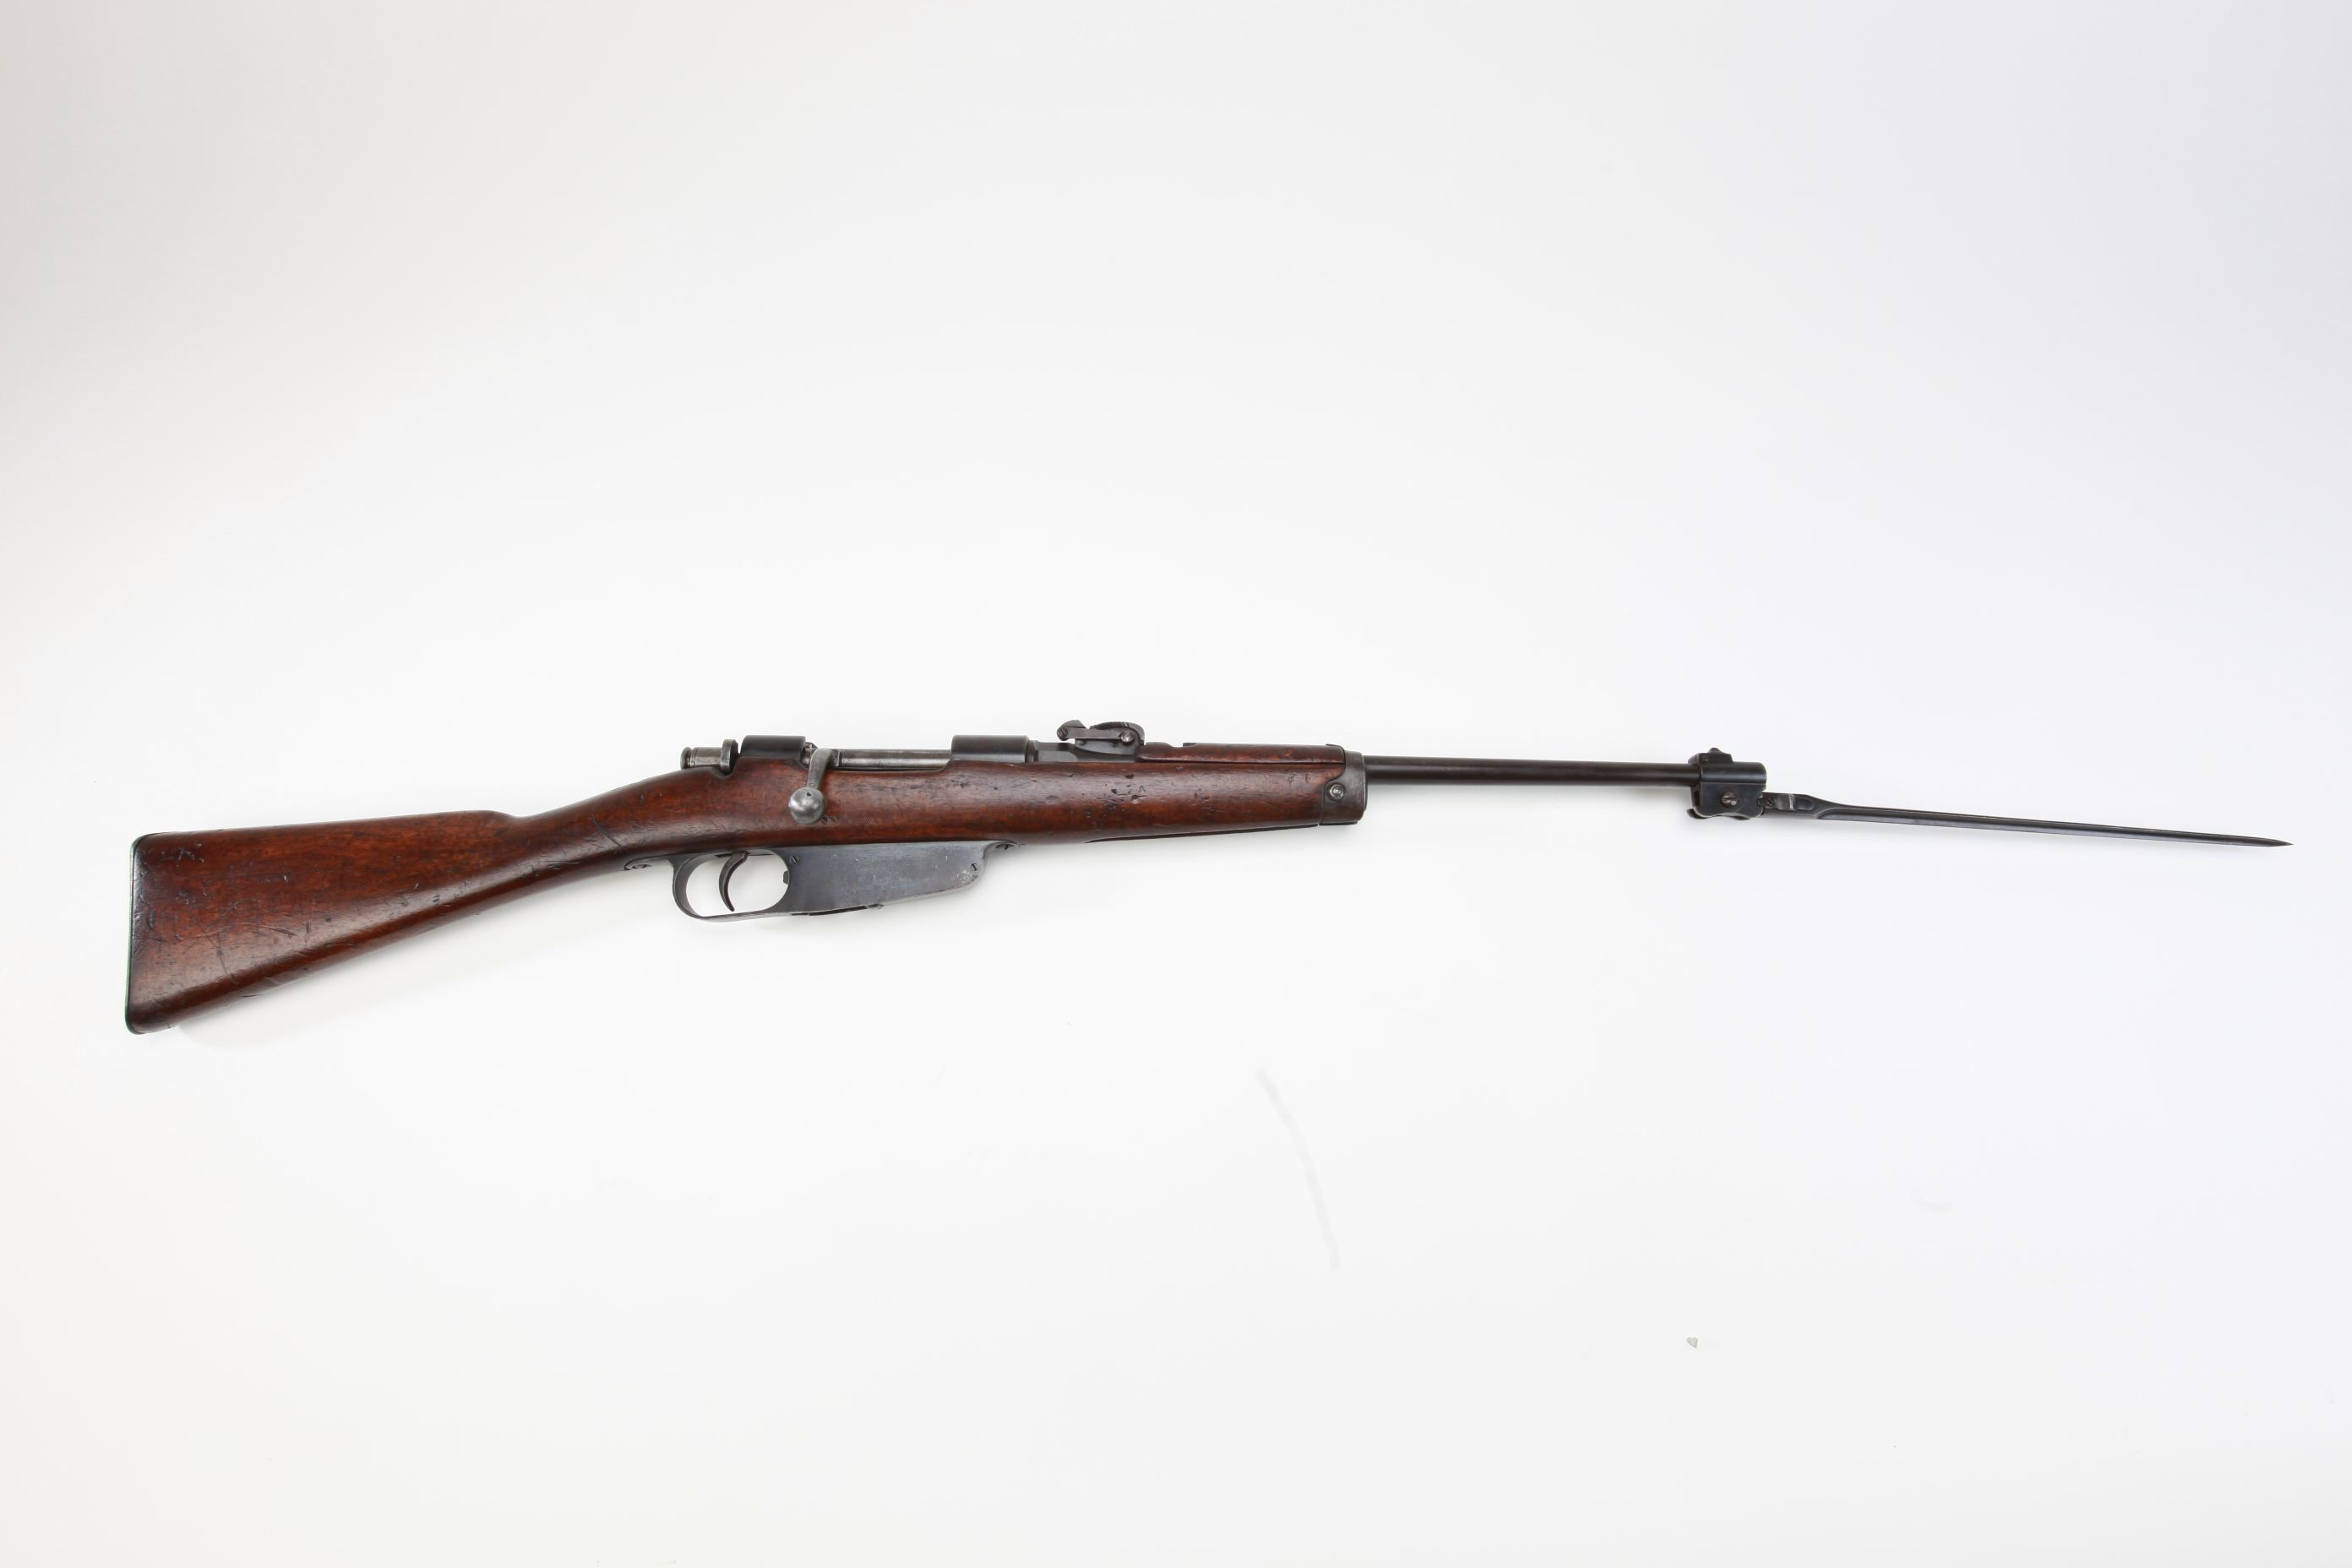 Gardone Model 1891 Mannlicher Carcano Bolt Action Rifle